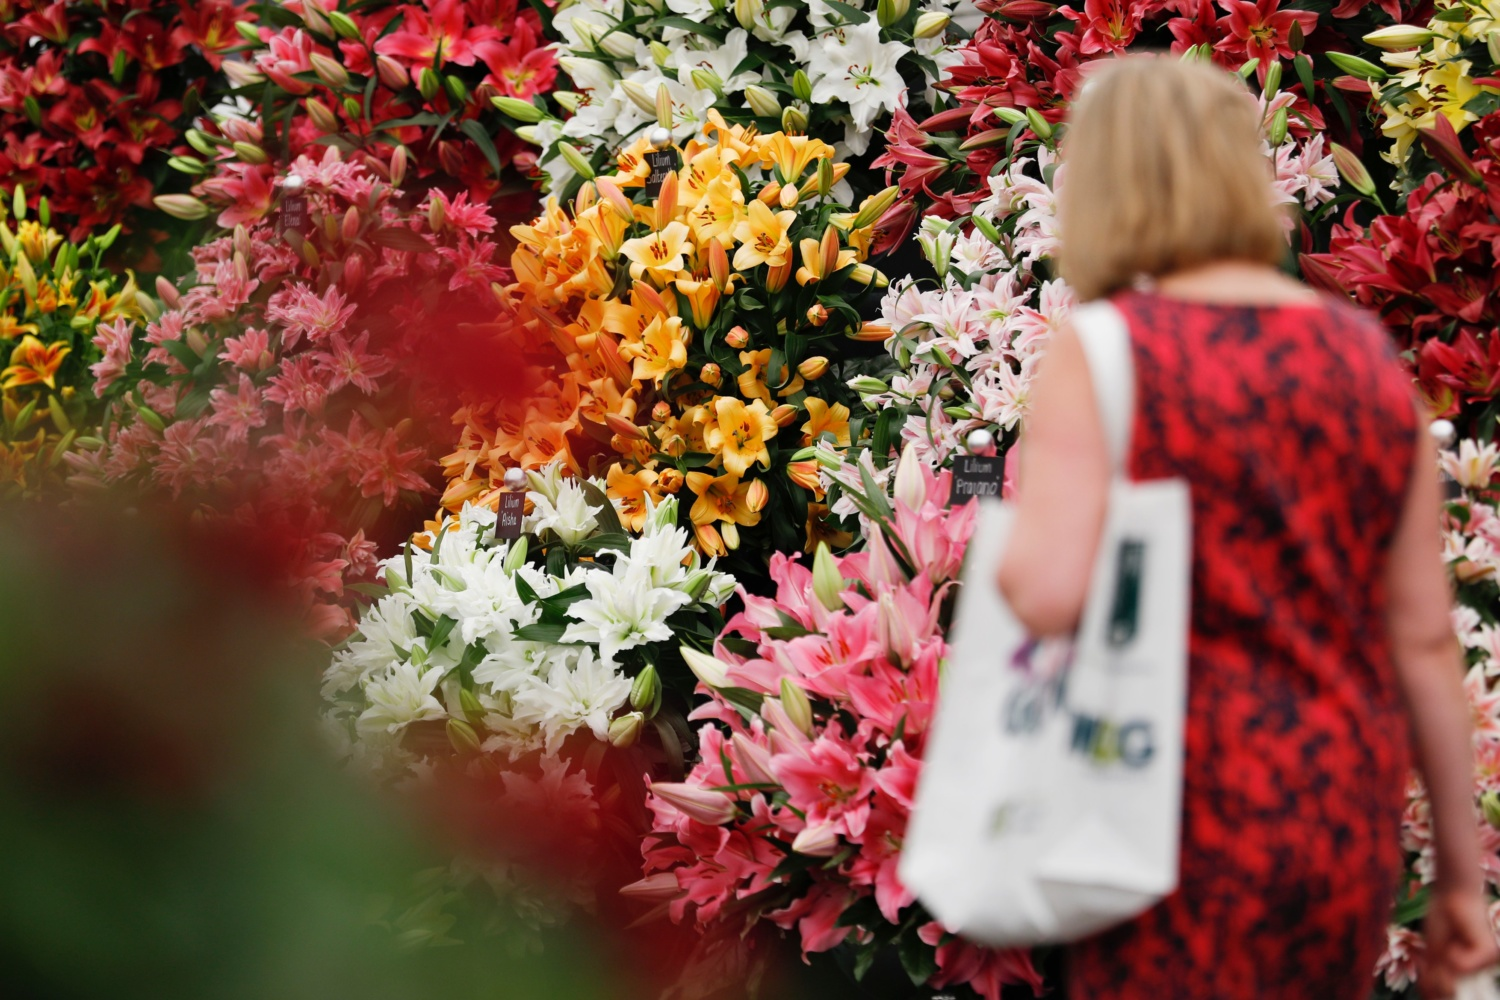 Visitor at RHS Chelsea wanders among flowers